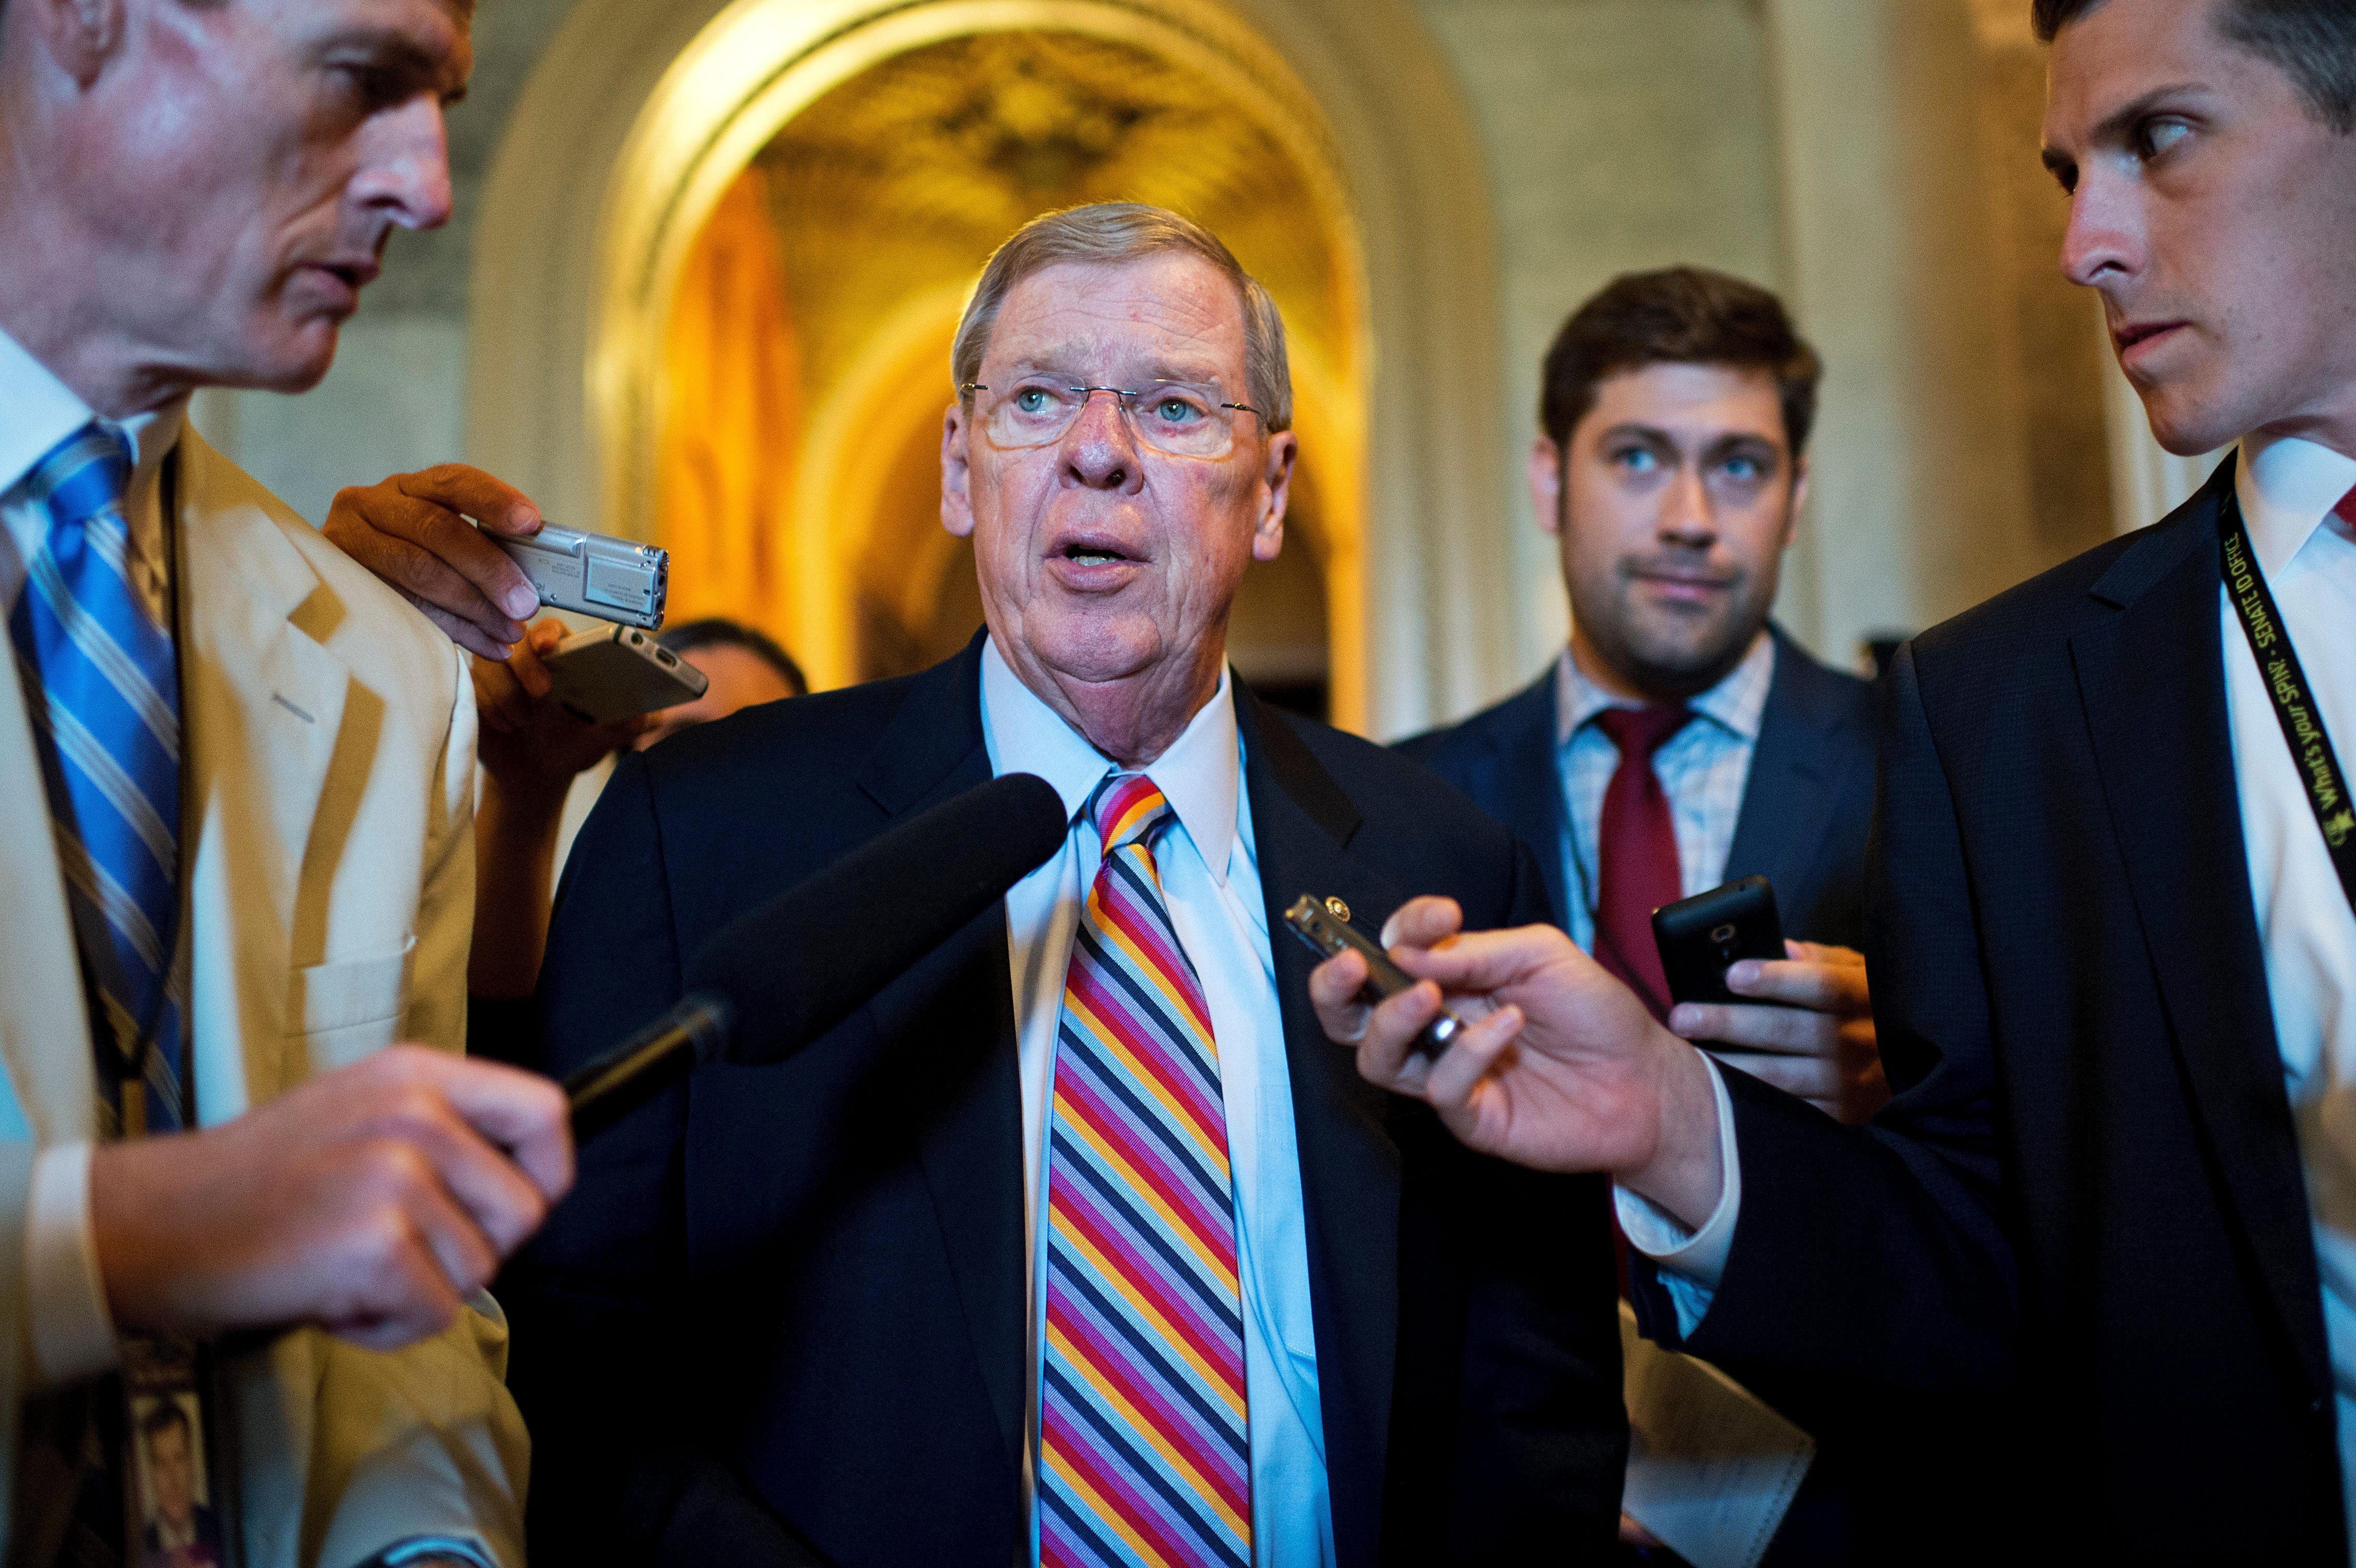 UNITED STATES - JUNE 23: Sen. Johnny Isakson, R-Ga., leaves the Senate Policy luncheons in the Capitol, June 23, 2015. (Photo By Tom Williams/CQ Roll Call)